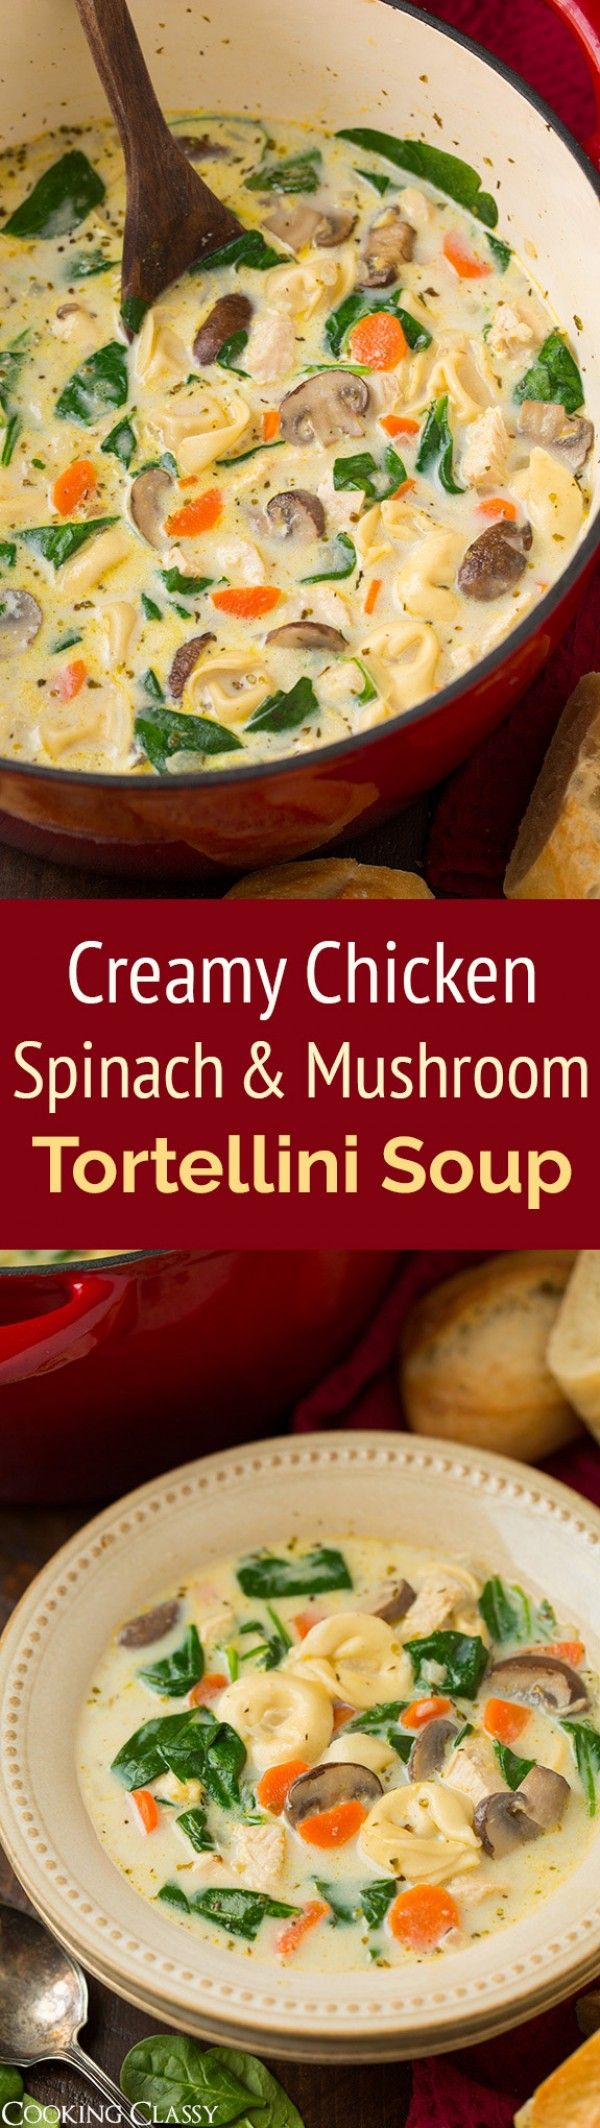 Get the recipe Creamy Chicken Spinach and Mushroom Tortellini Soup @recipes_to_go